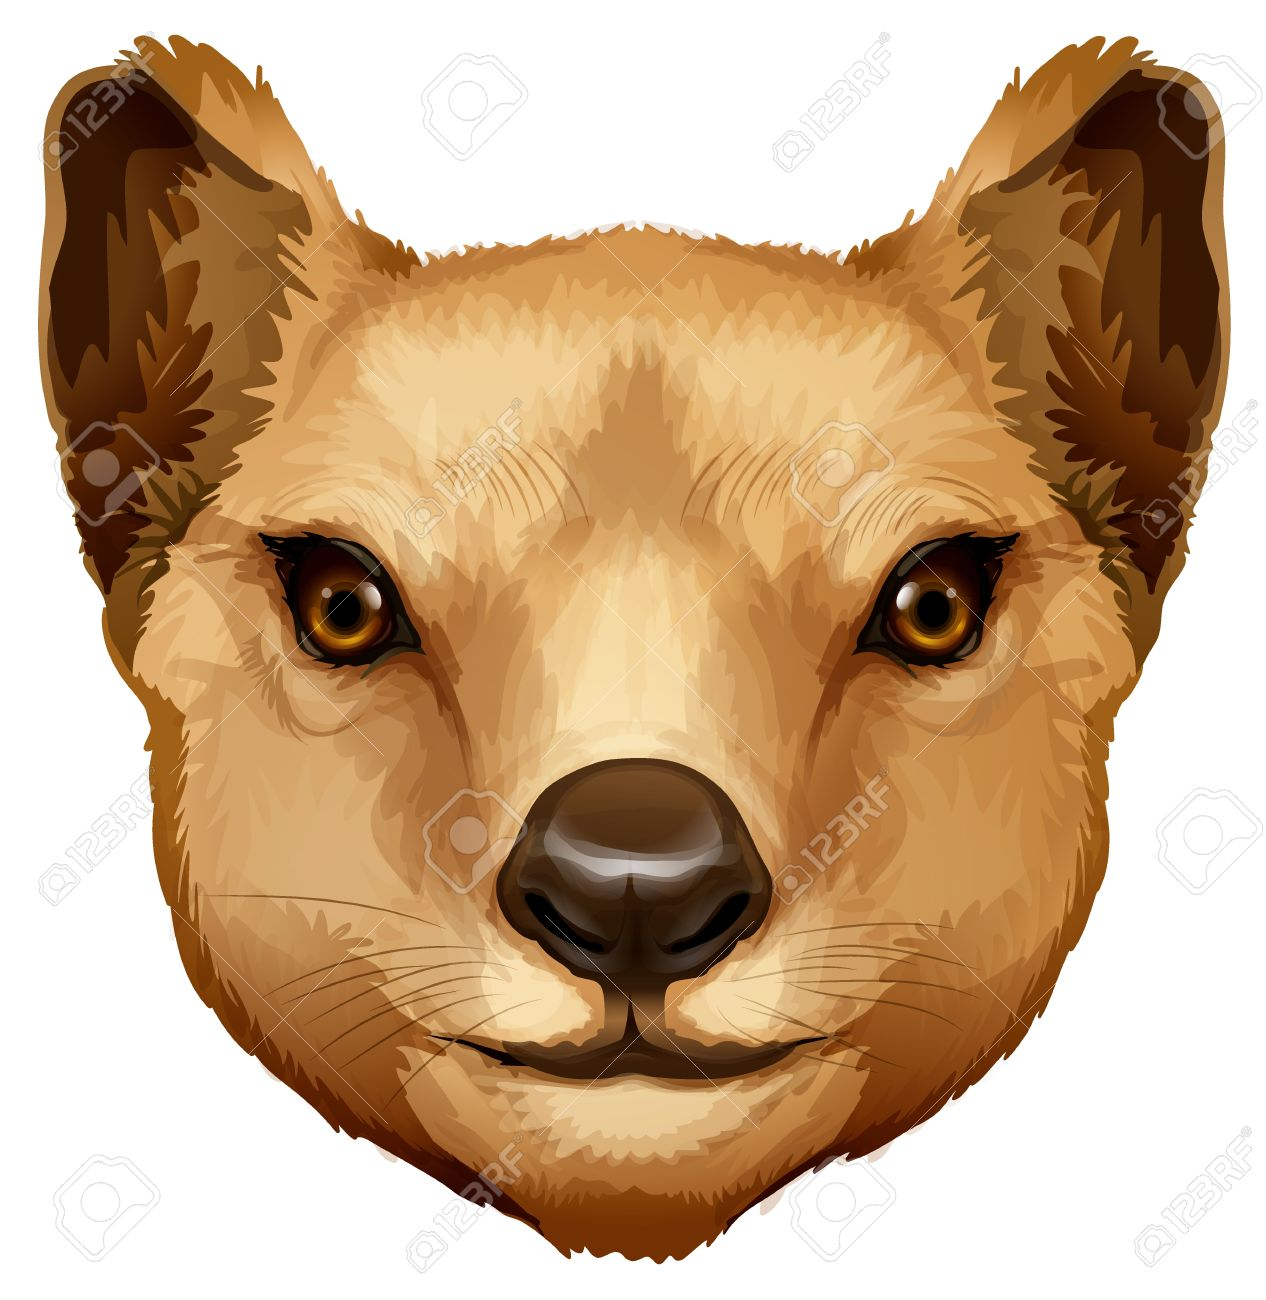 Illustration Of A Tasmanian Tiger Head Royalty Free Cliparts.